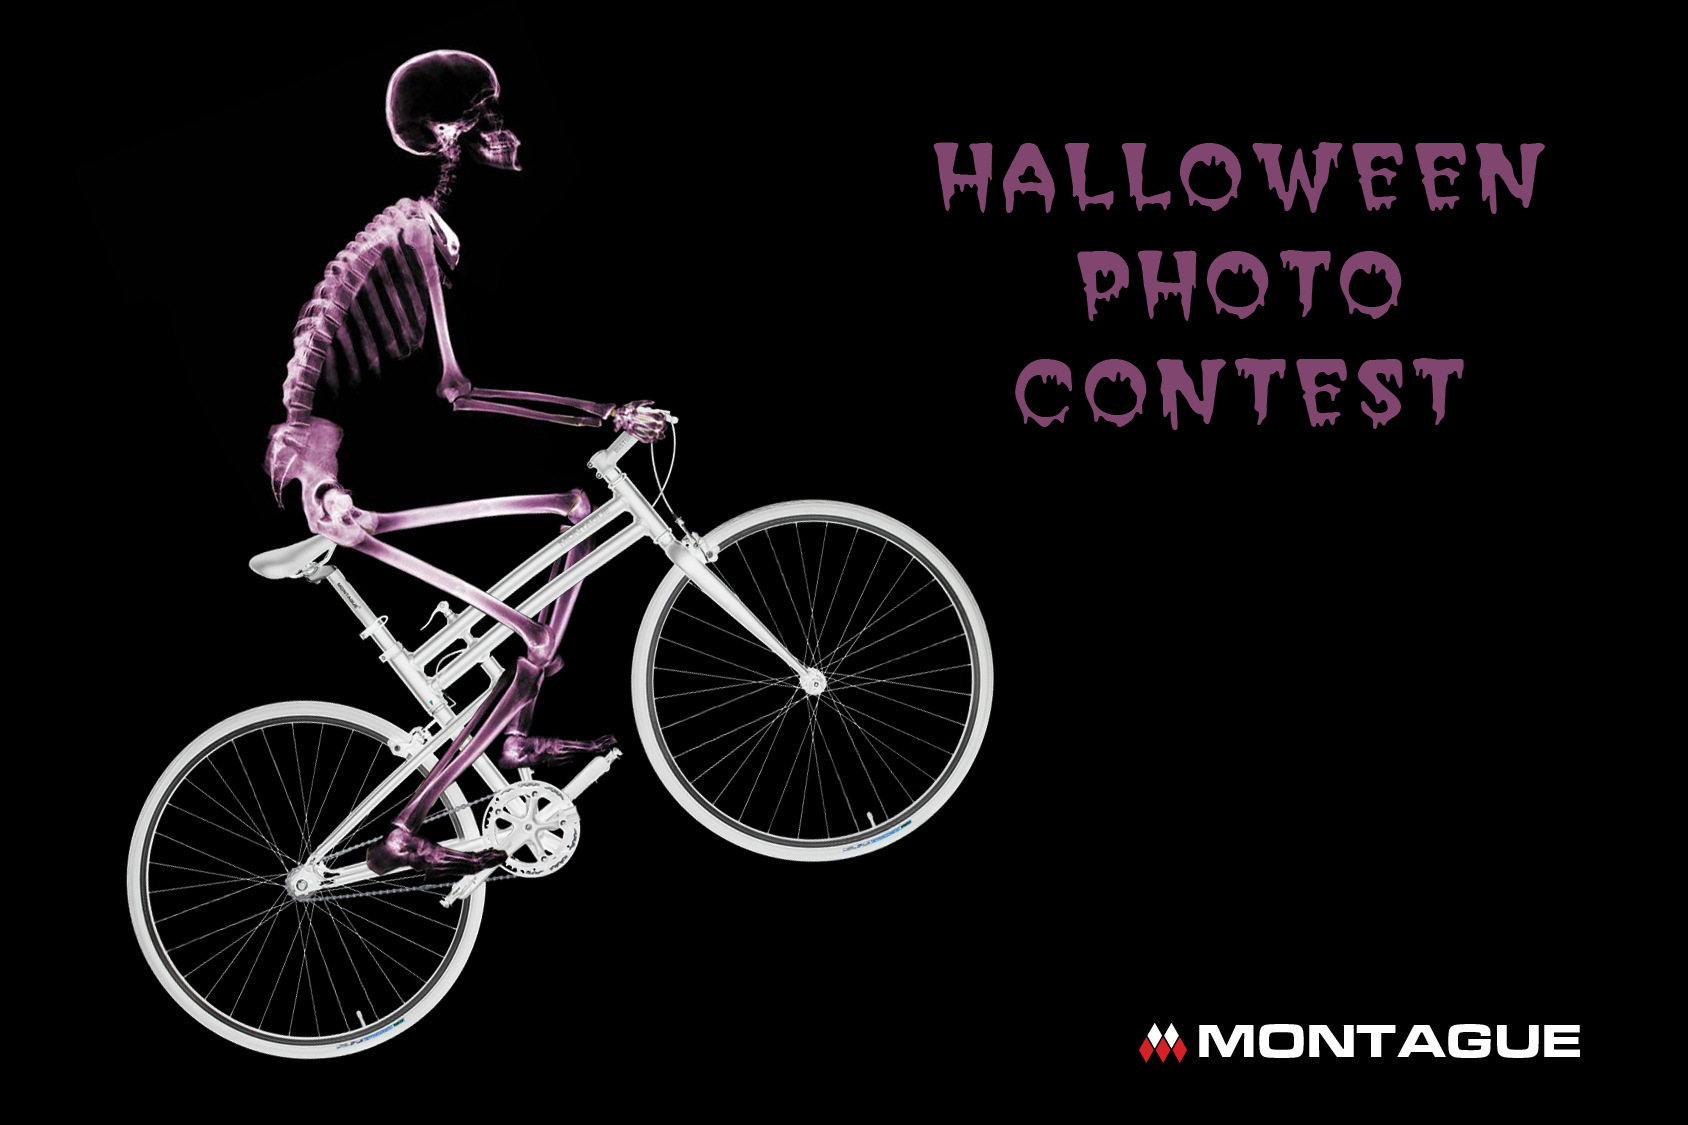 Montague Folding Bike Halloween Contest